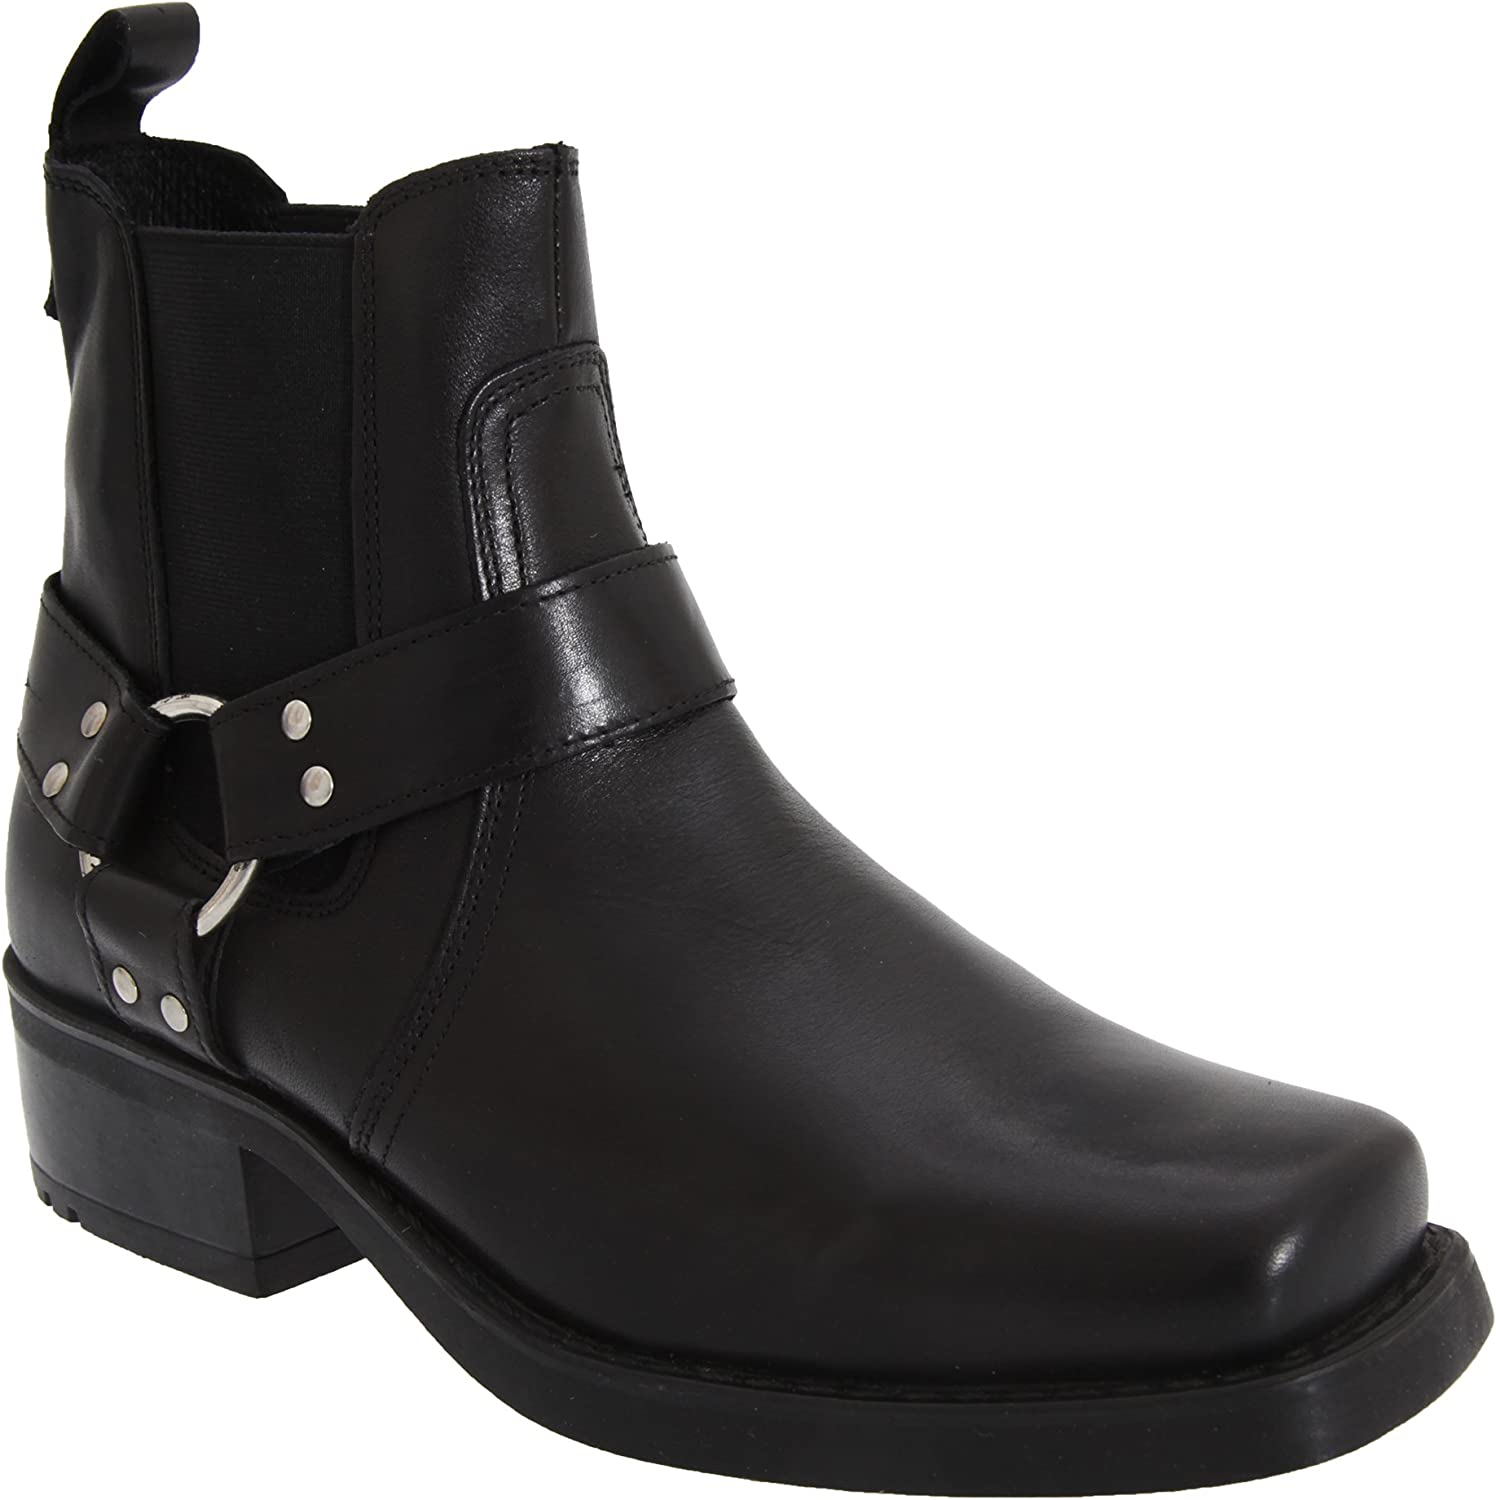 Gringos Mens Low Harley Gusset Harness Leather Boots